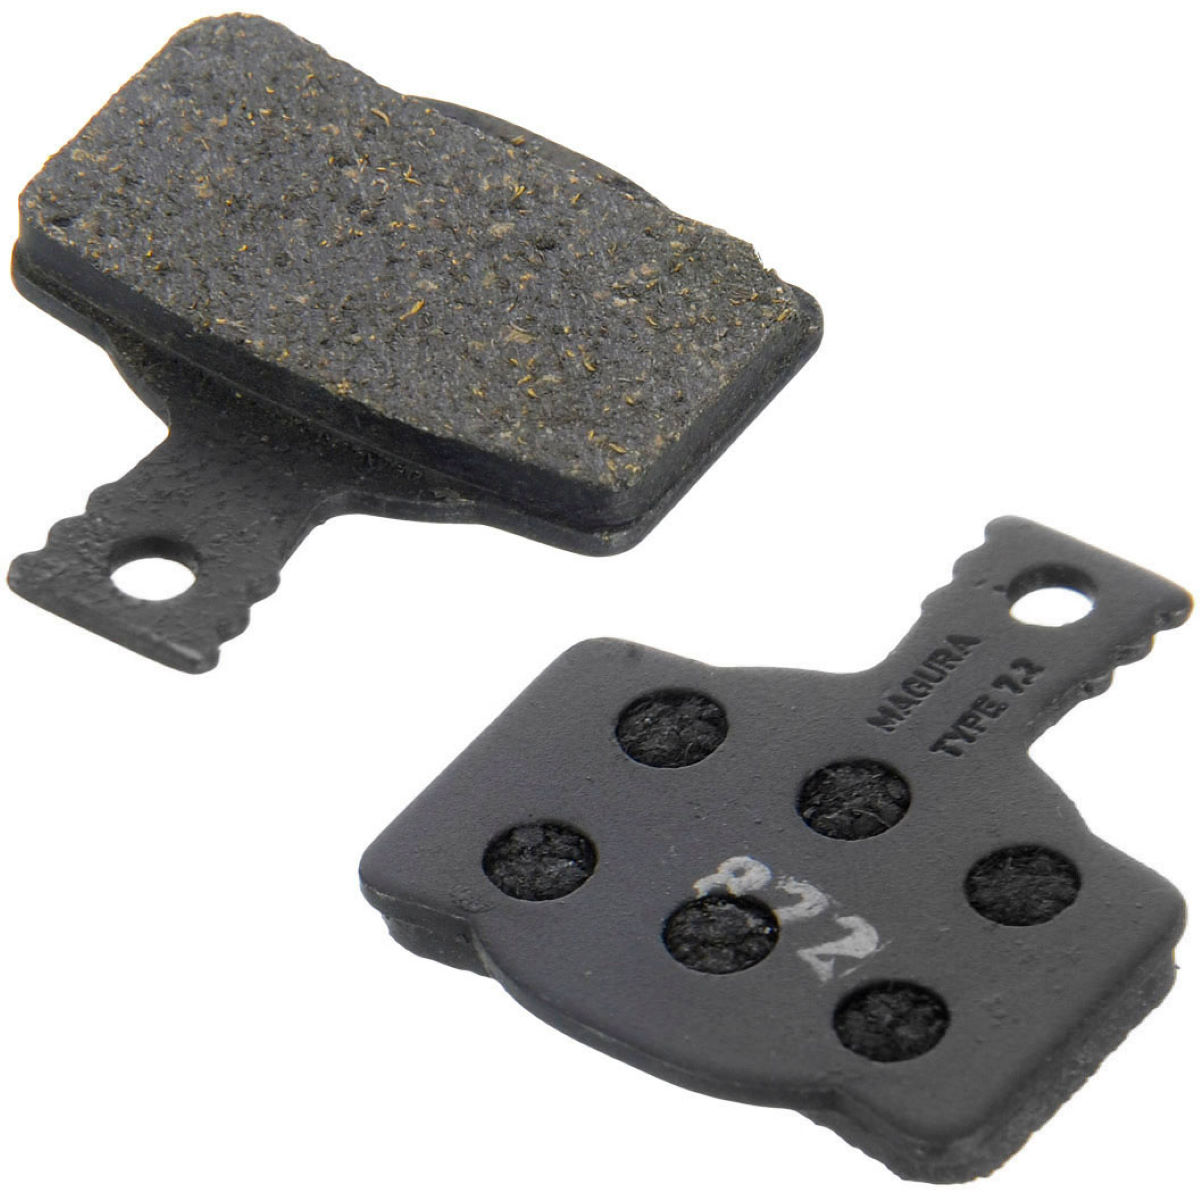 Magura Magura MT Series Disc Brake Pads - Rotores para frenos de disco